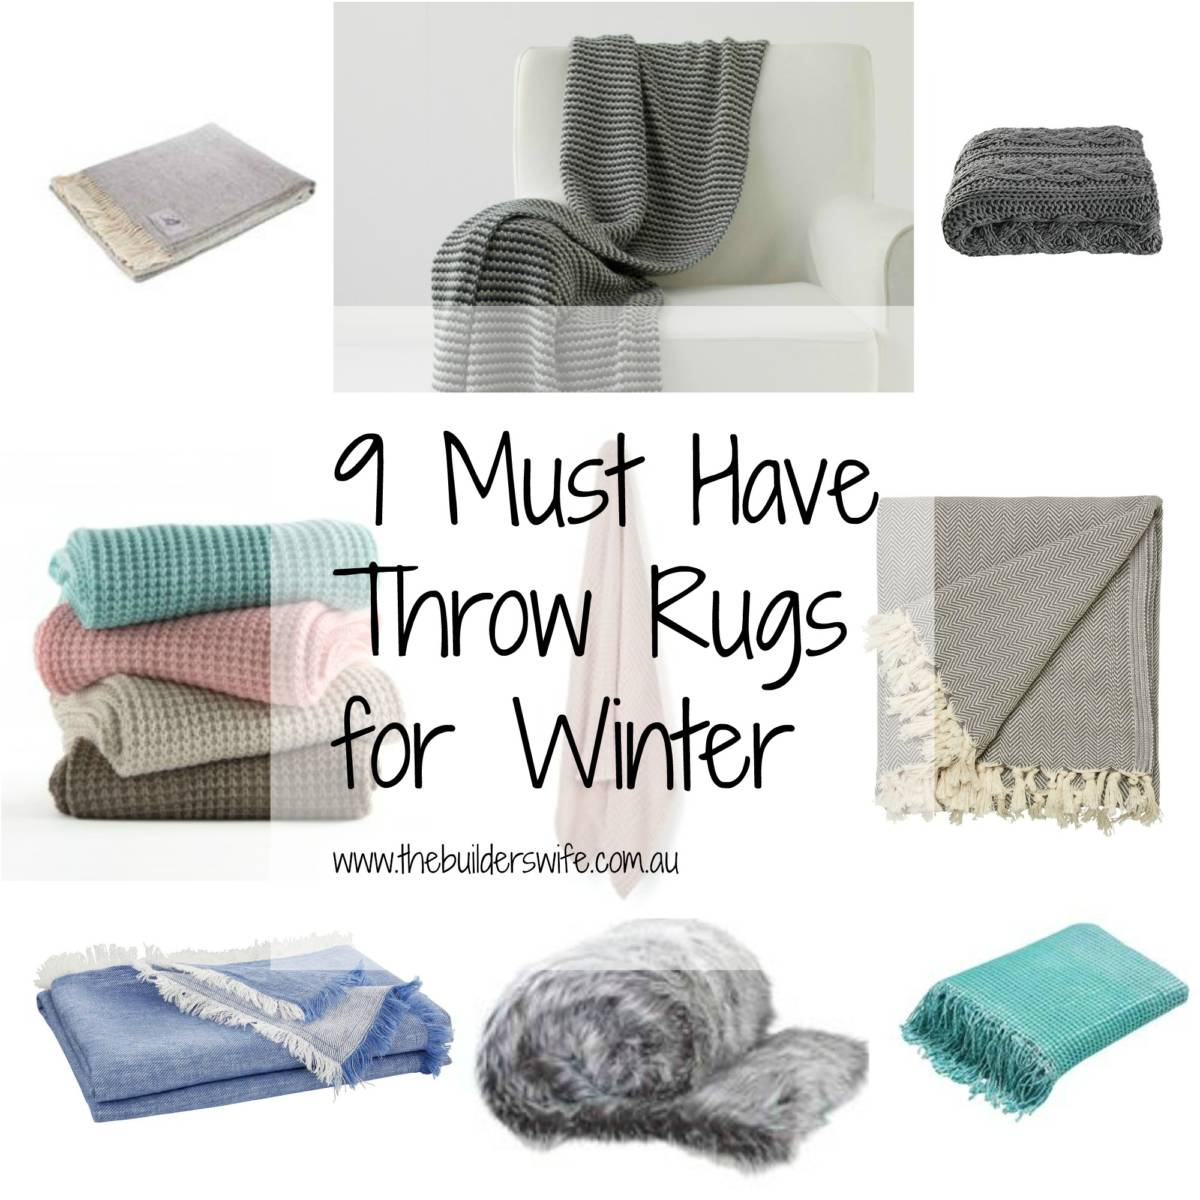 Throw Rugs For Winter